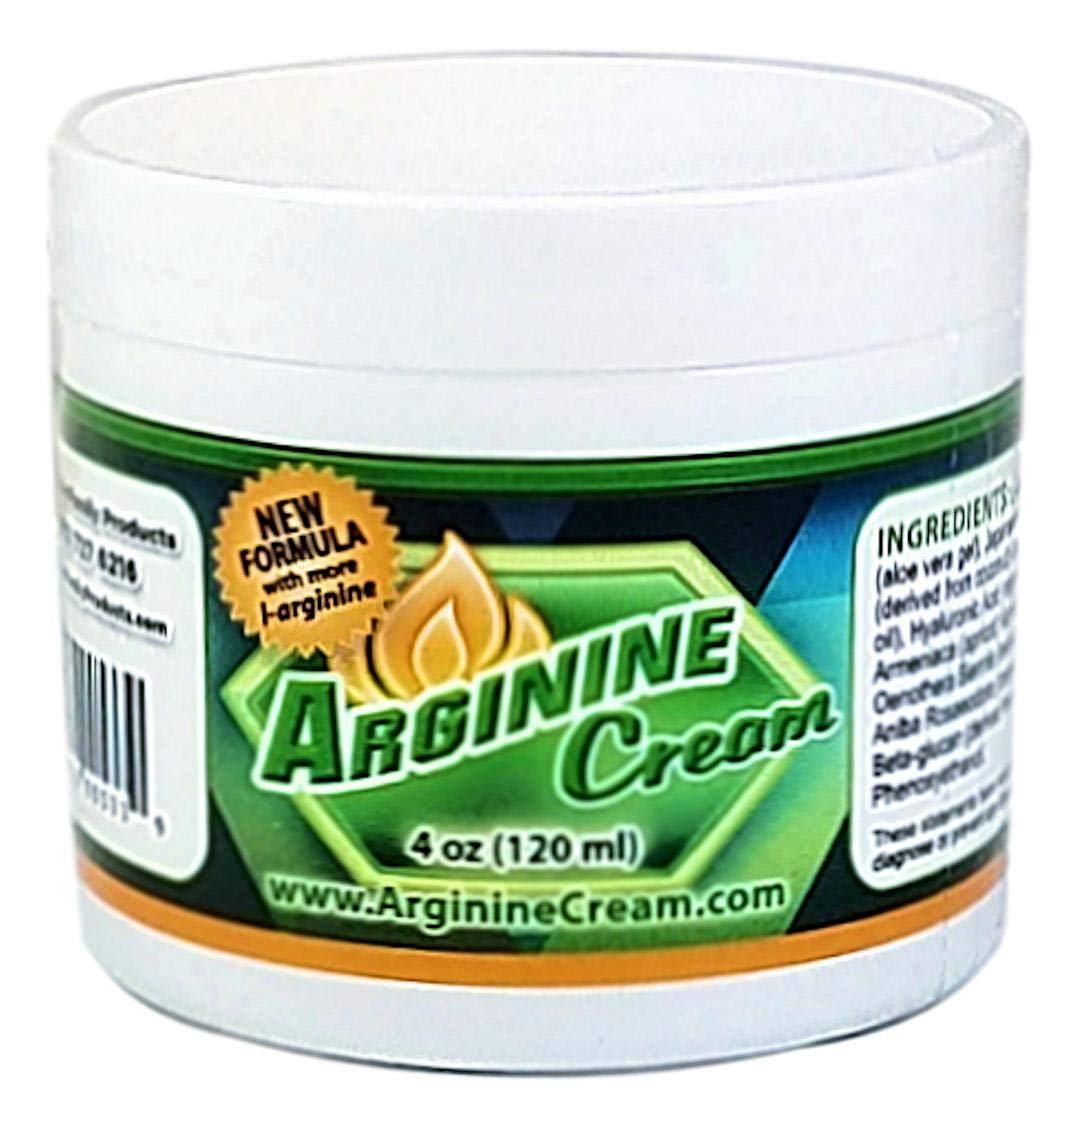 L-Arginine Cream - Arginine Supplement - Supports Increased Blood Flow for Improved Circulation - for Men and Women - Unscented (4 Ounces)